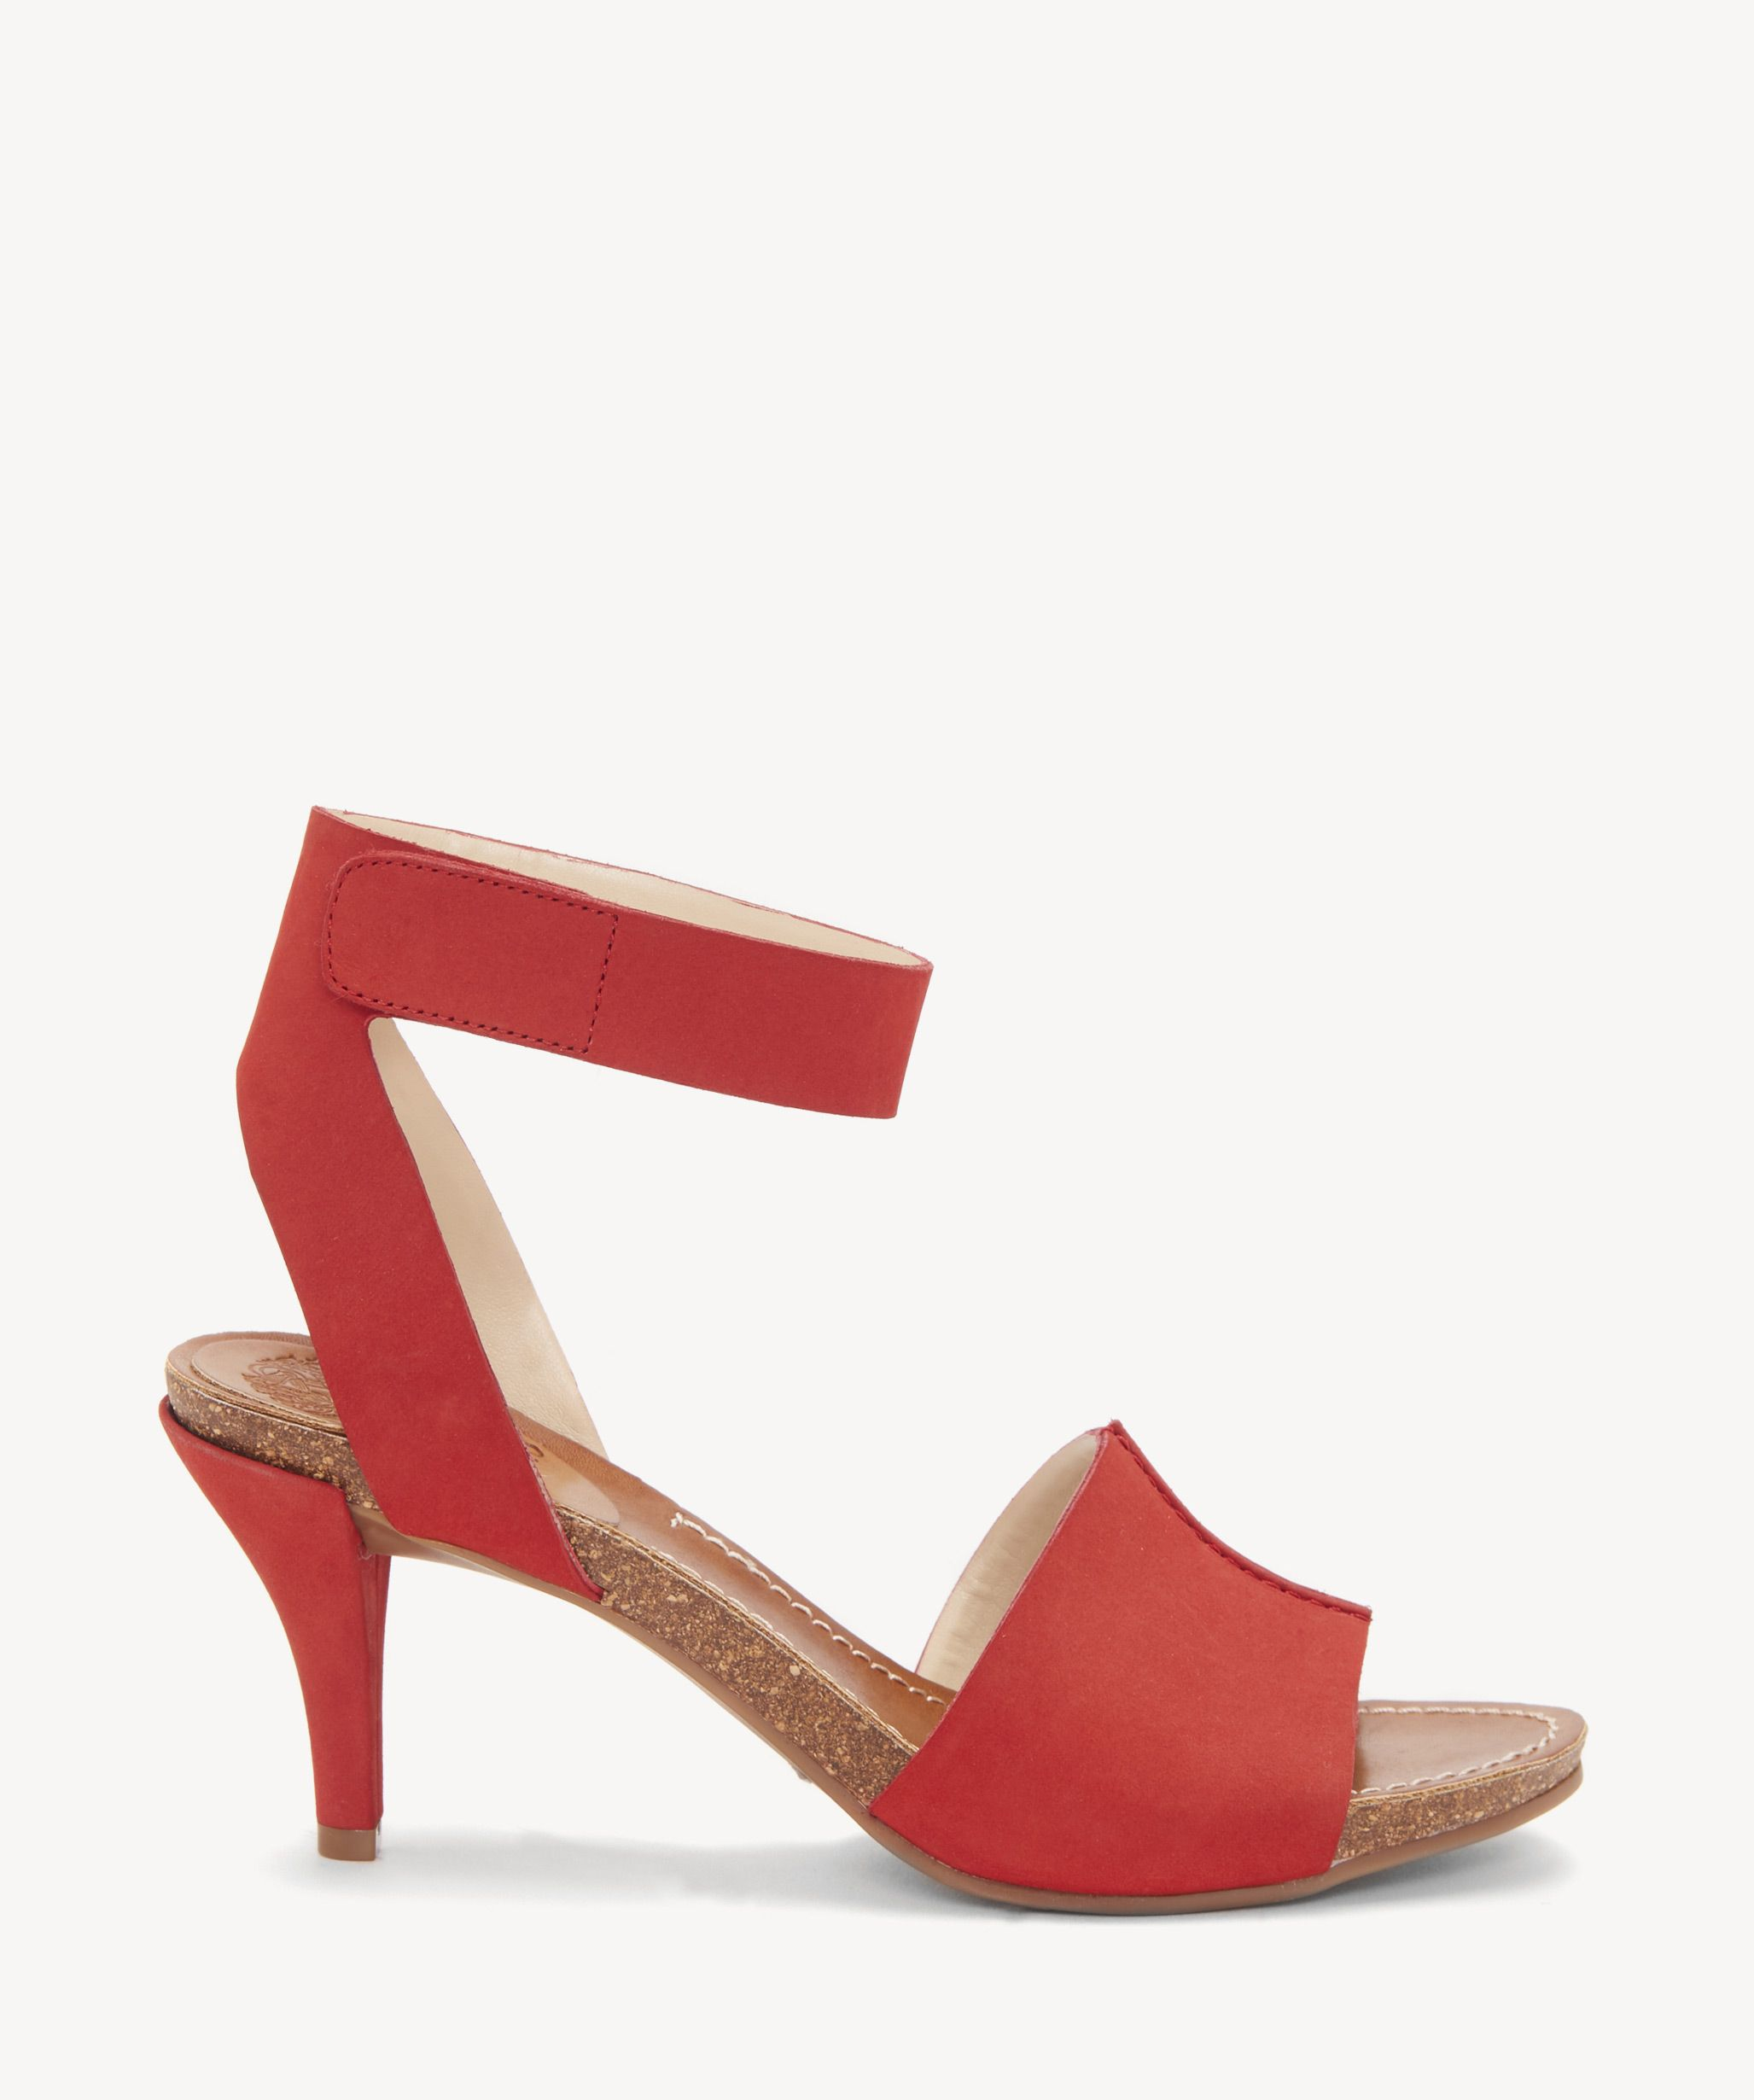 555c45599770 Vince Camuto Women s Odela Heeled Sandals In Color  Tomatoe Tang